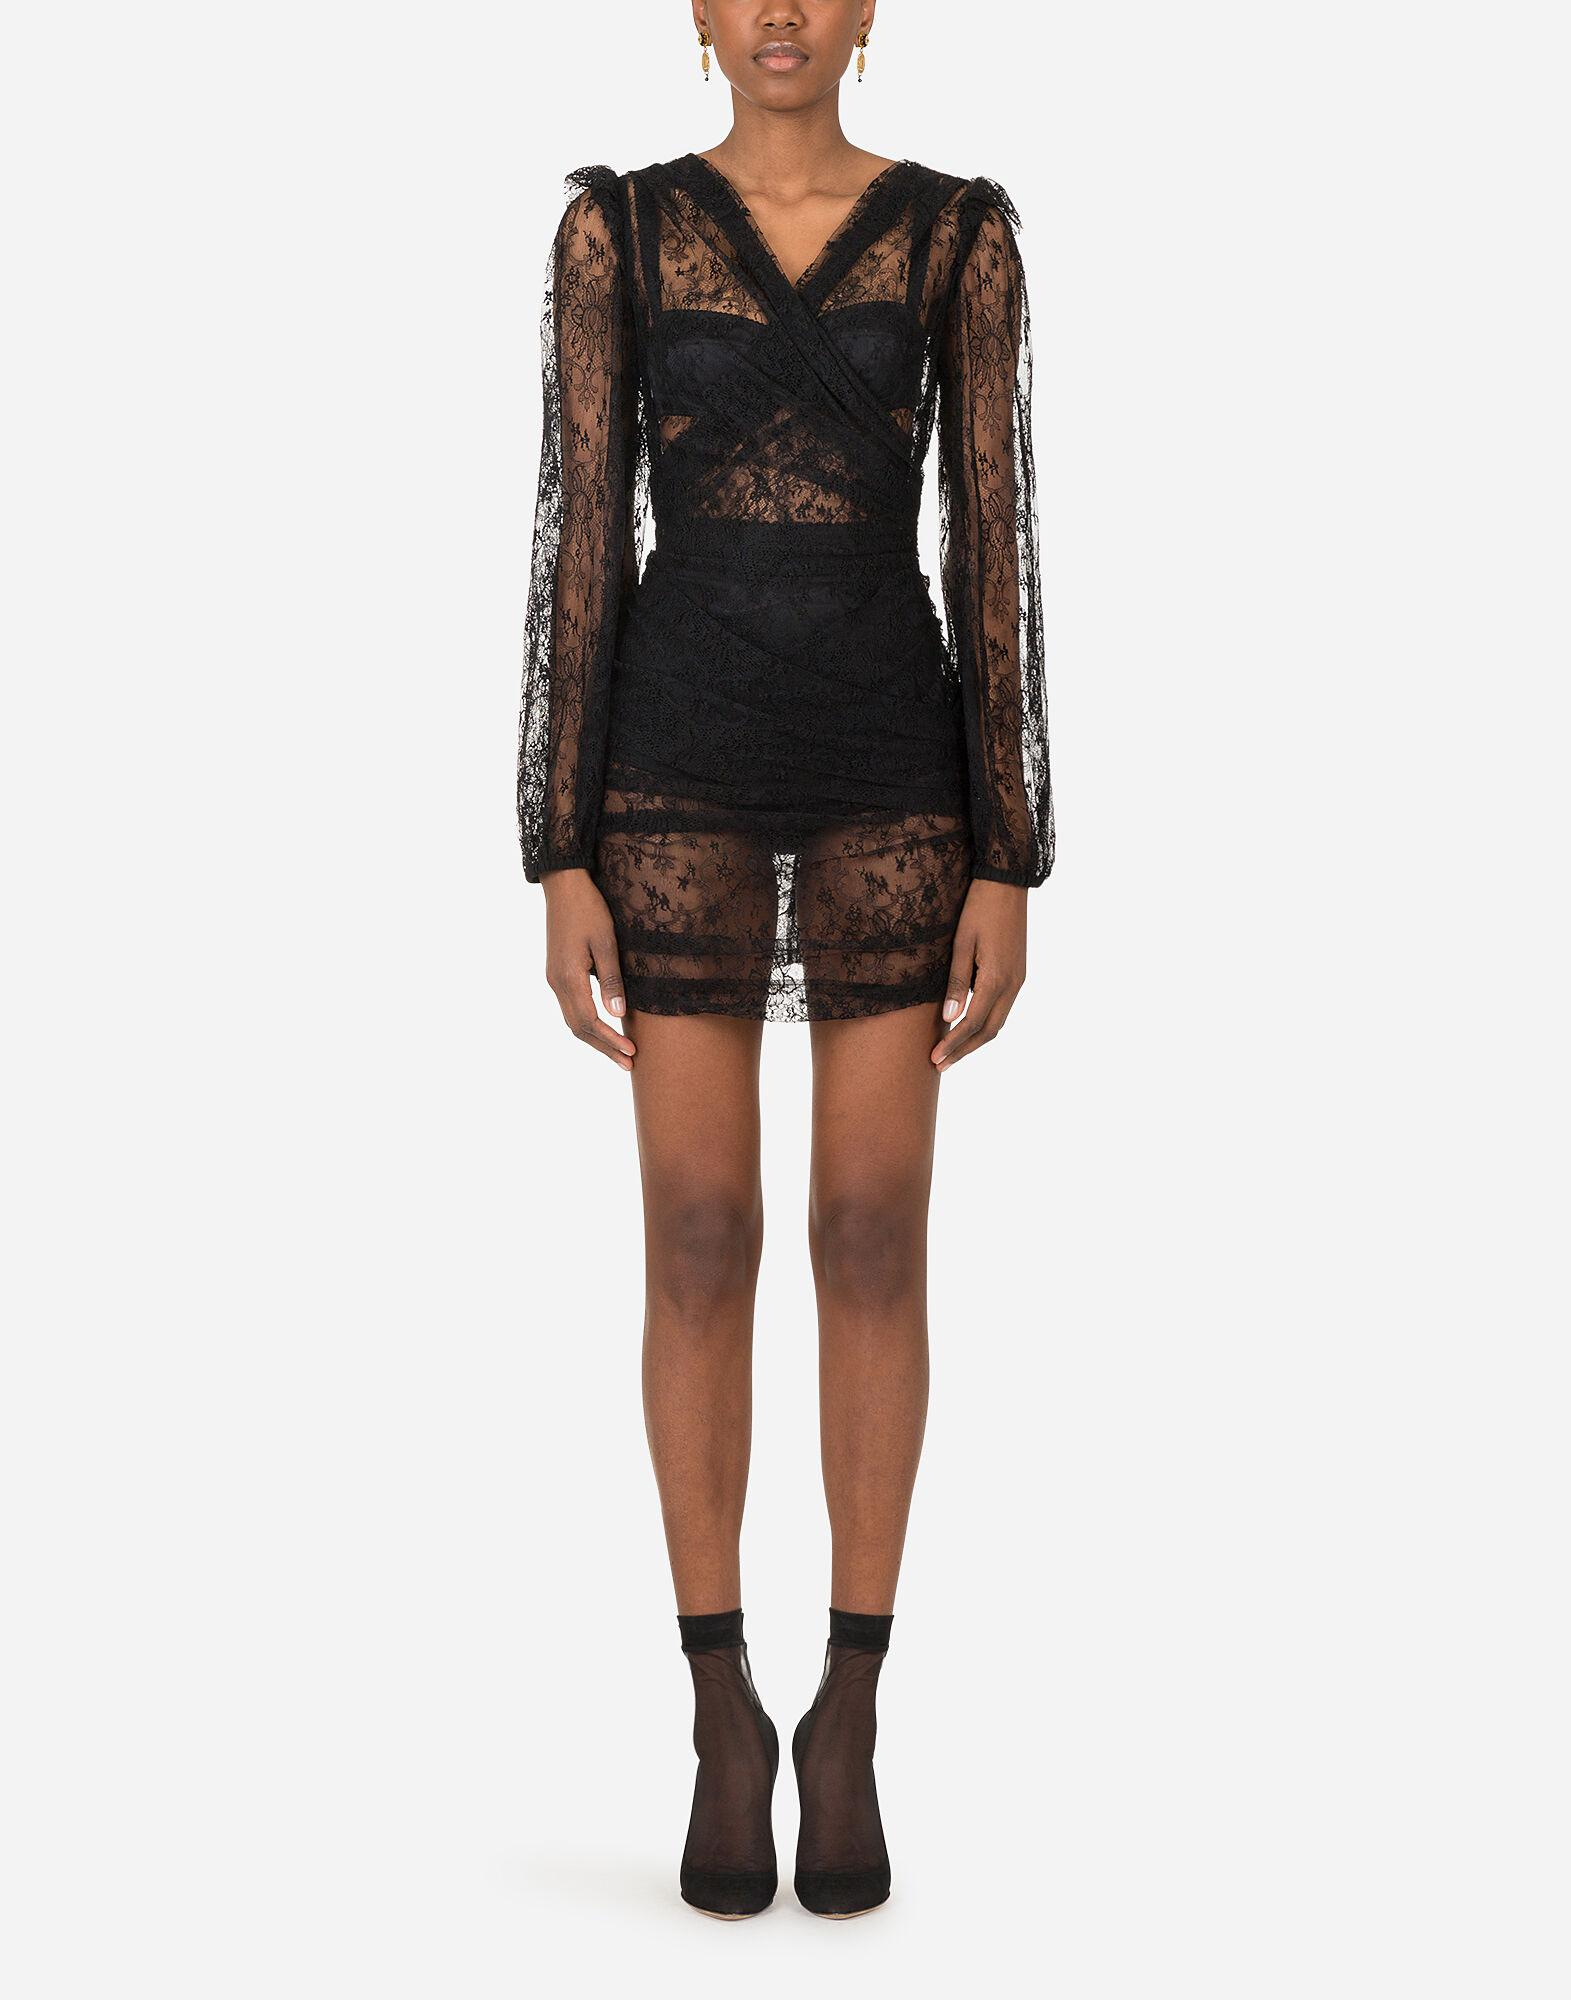 Galloon lace mini dress with draped detailing